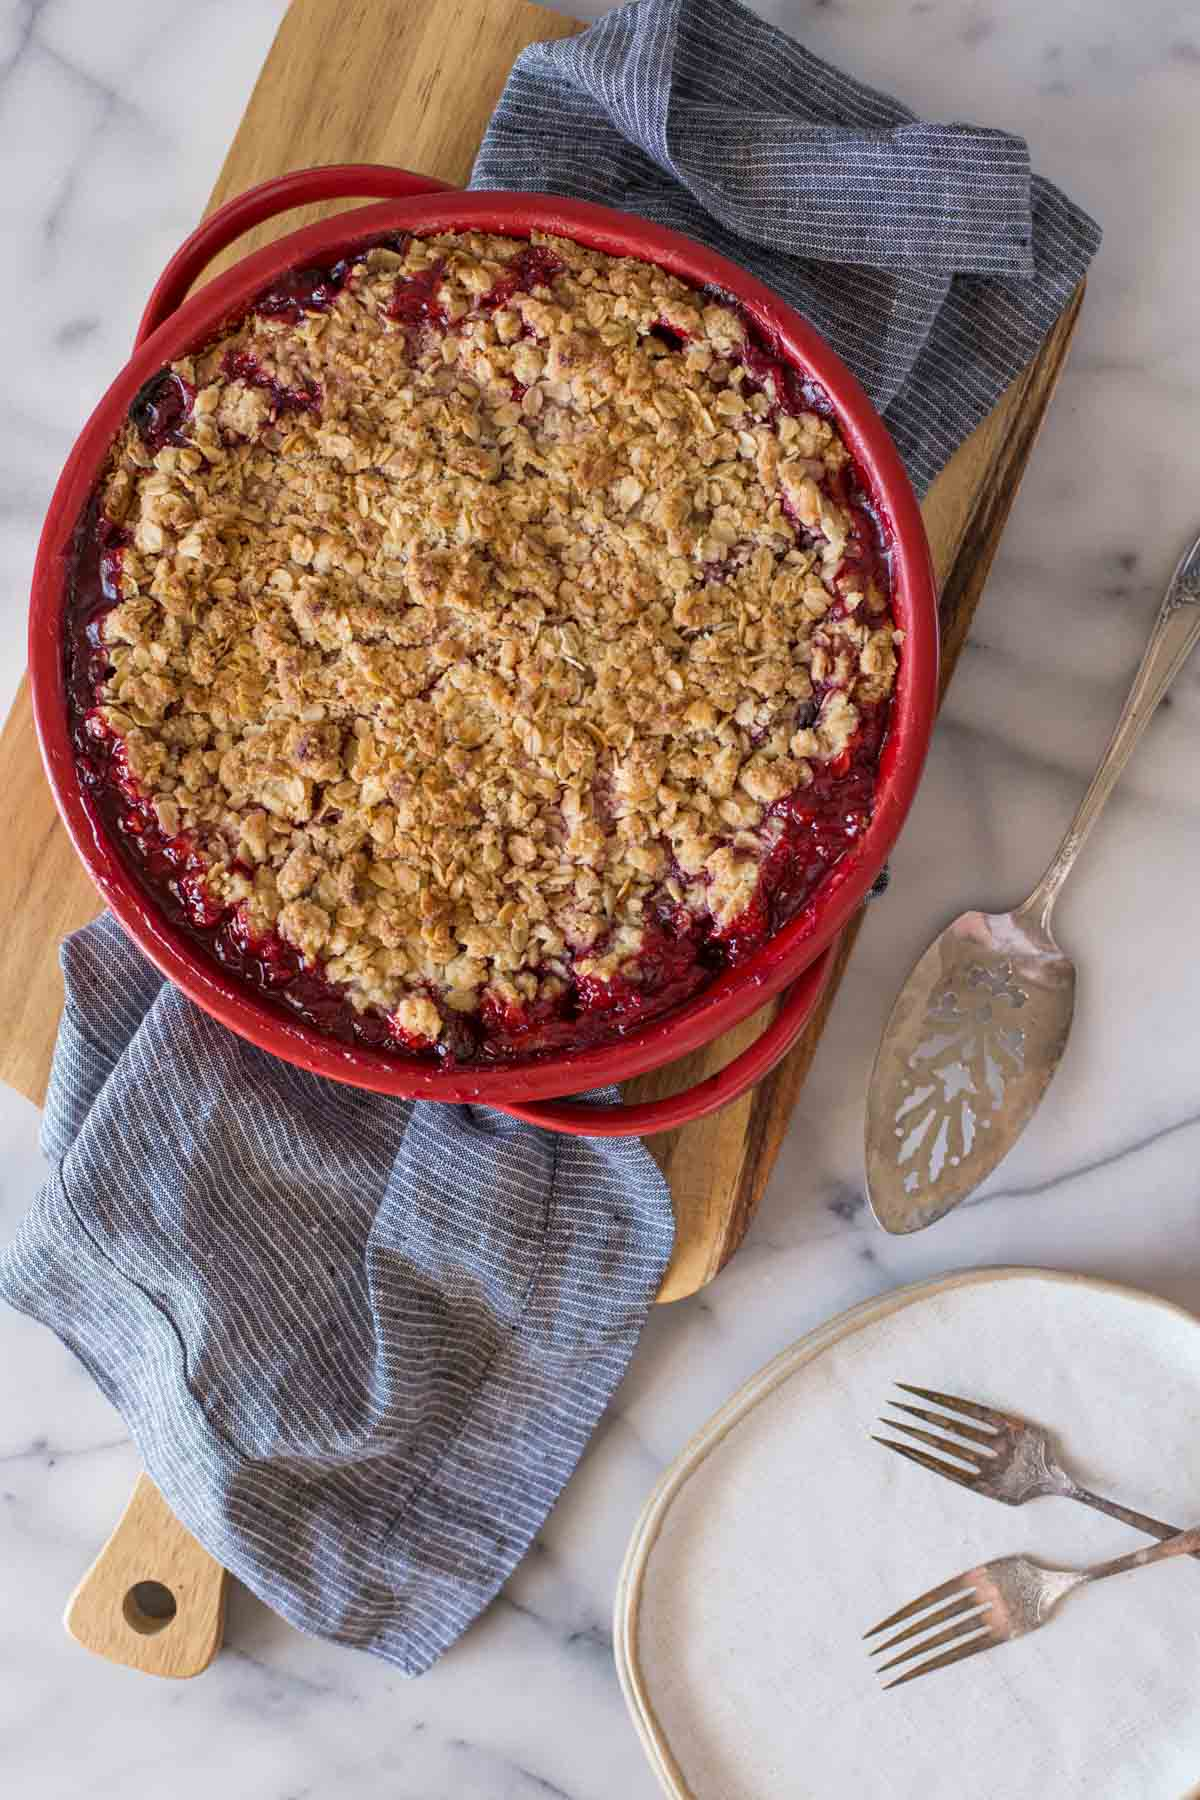 Overhead shot of a whole Berry Crumble Pie on a wooden cutting board.